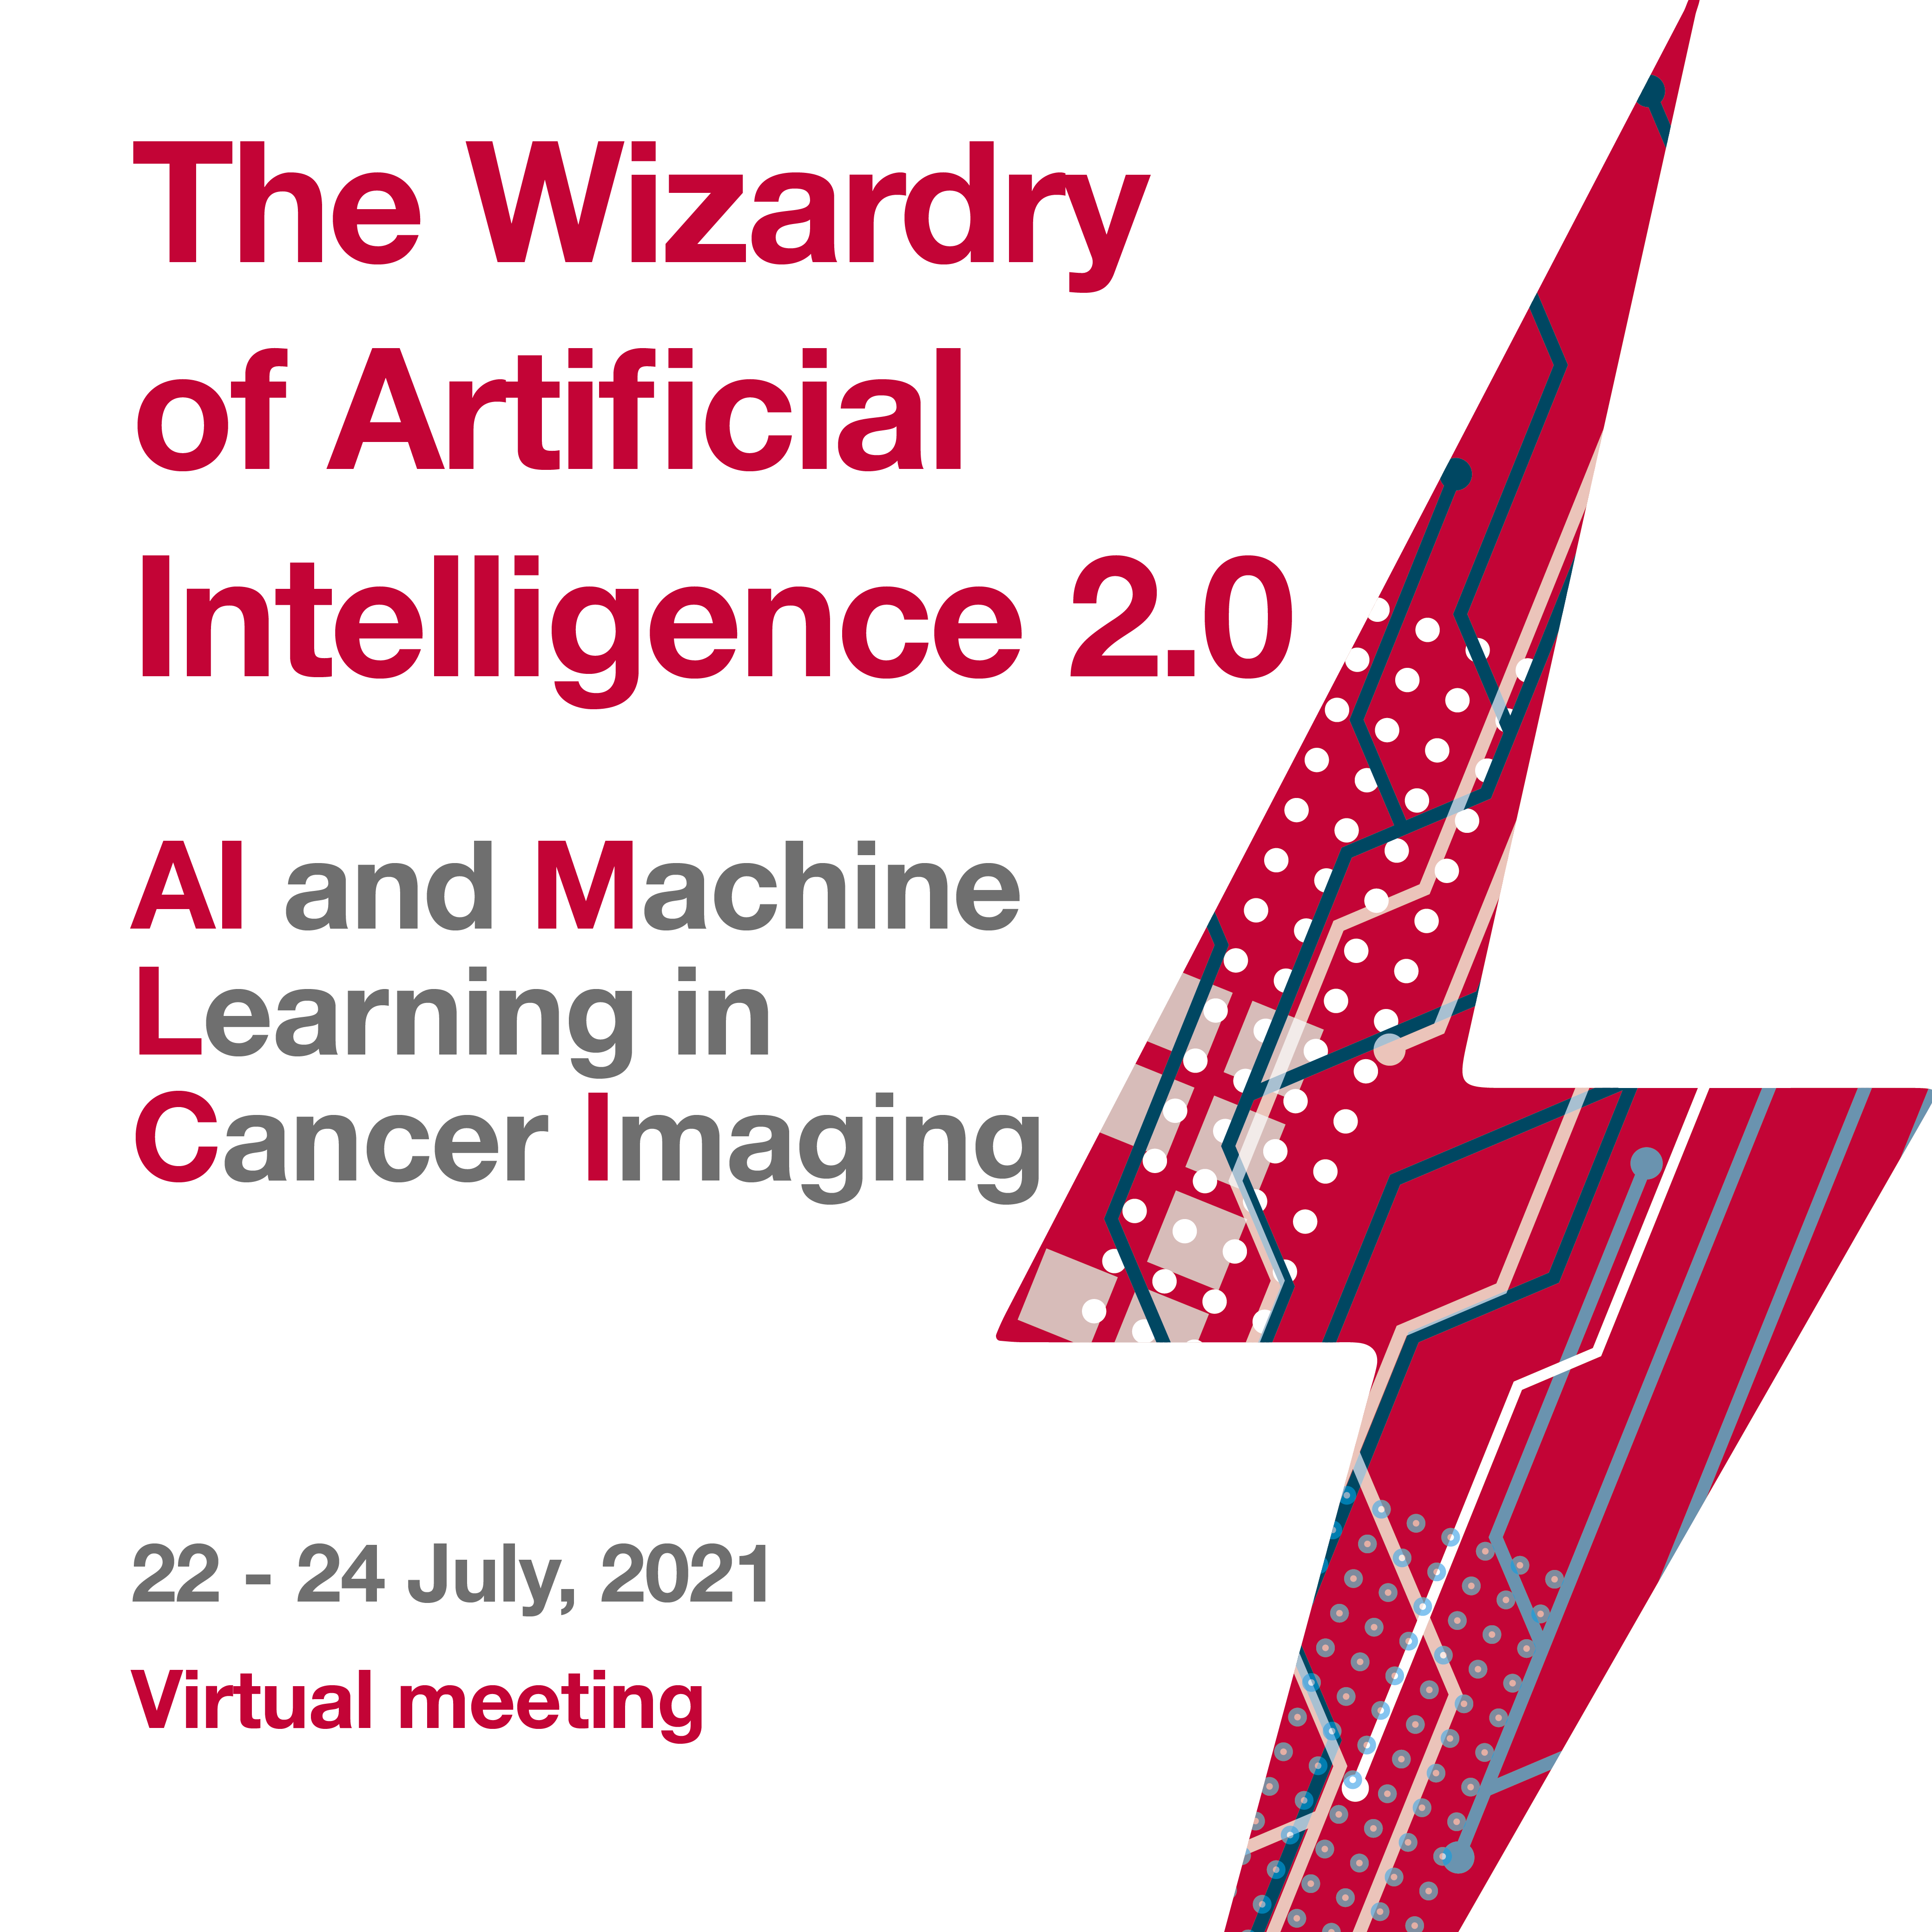 The Wizardry of AI and Machine Learning in Cancer Imaging